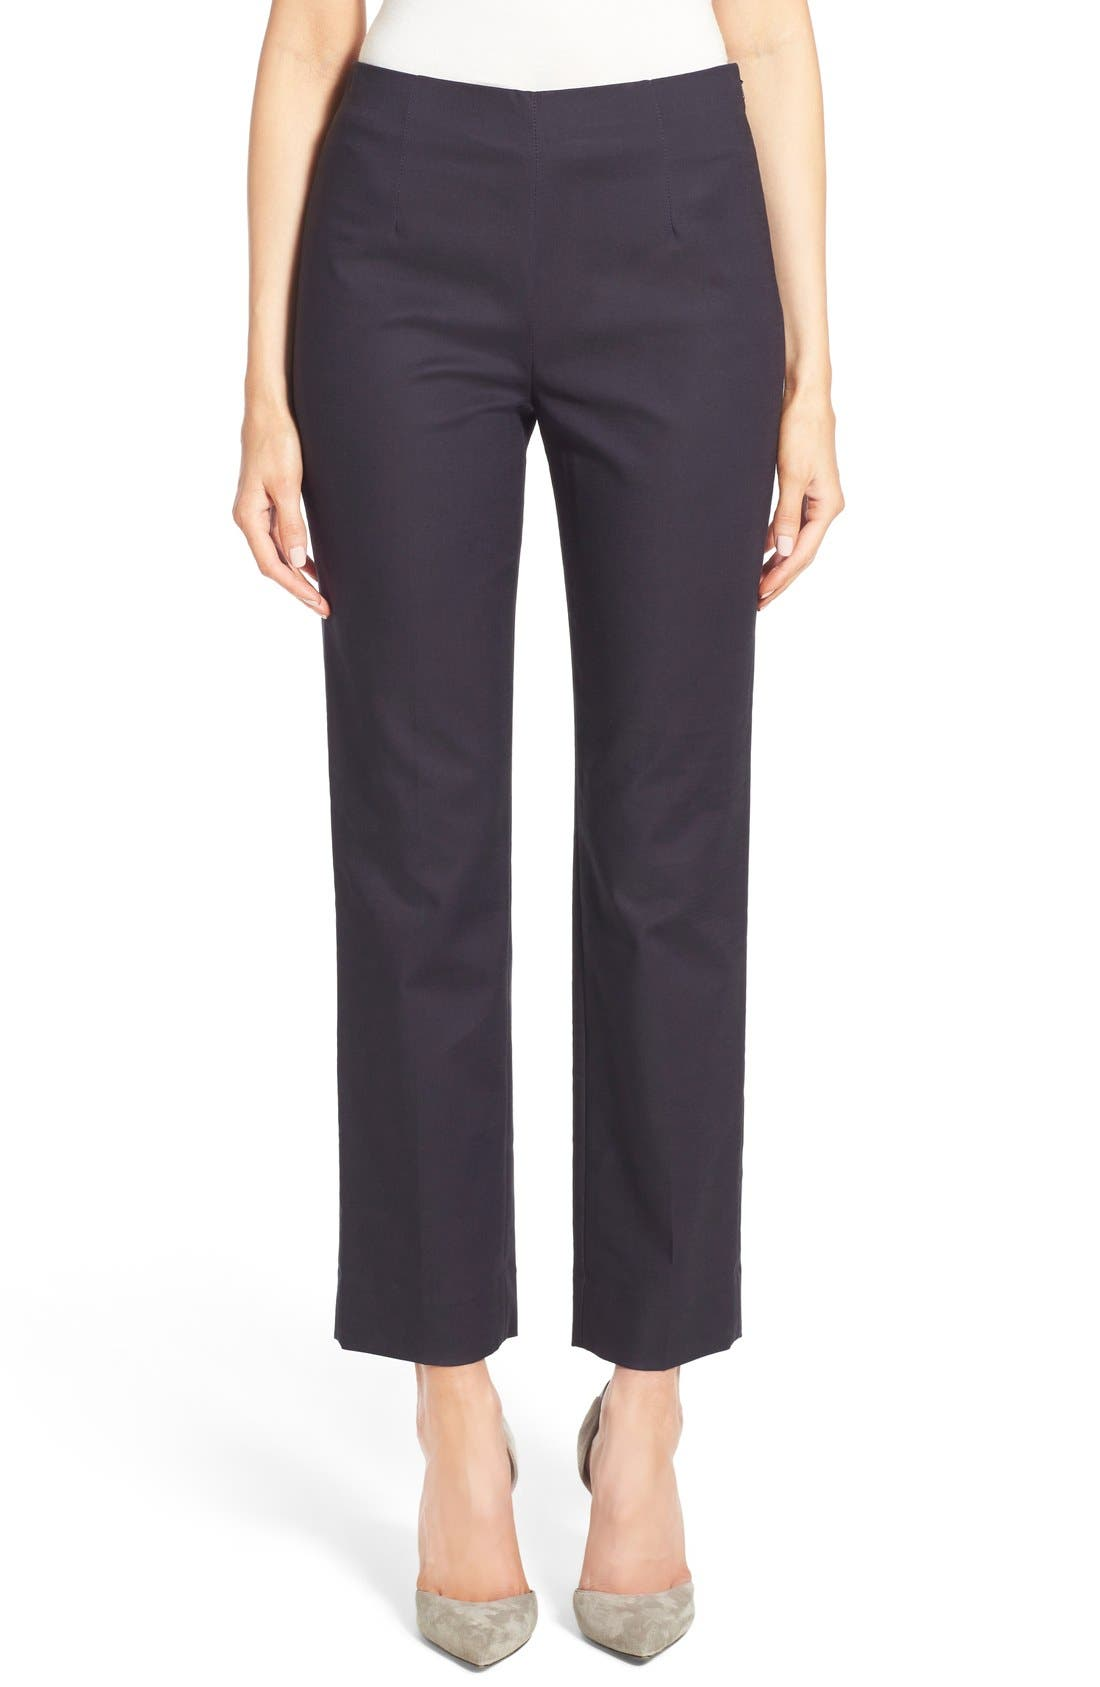 Main Image - NIC+ZOE 'Perfect' Side Zip Ankle Pants